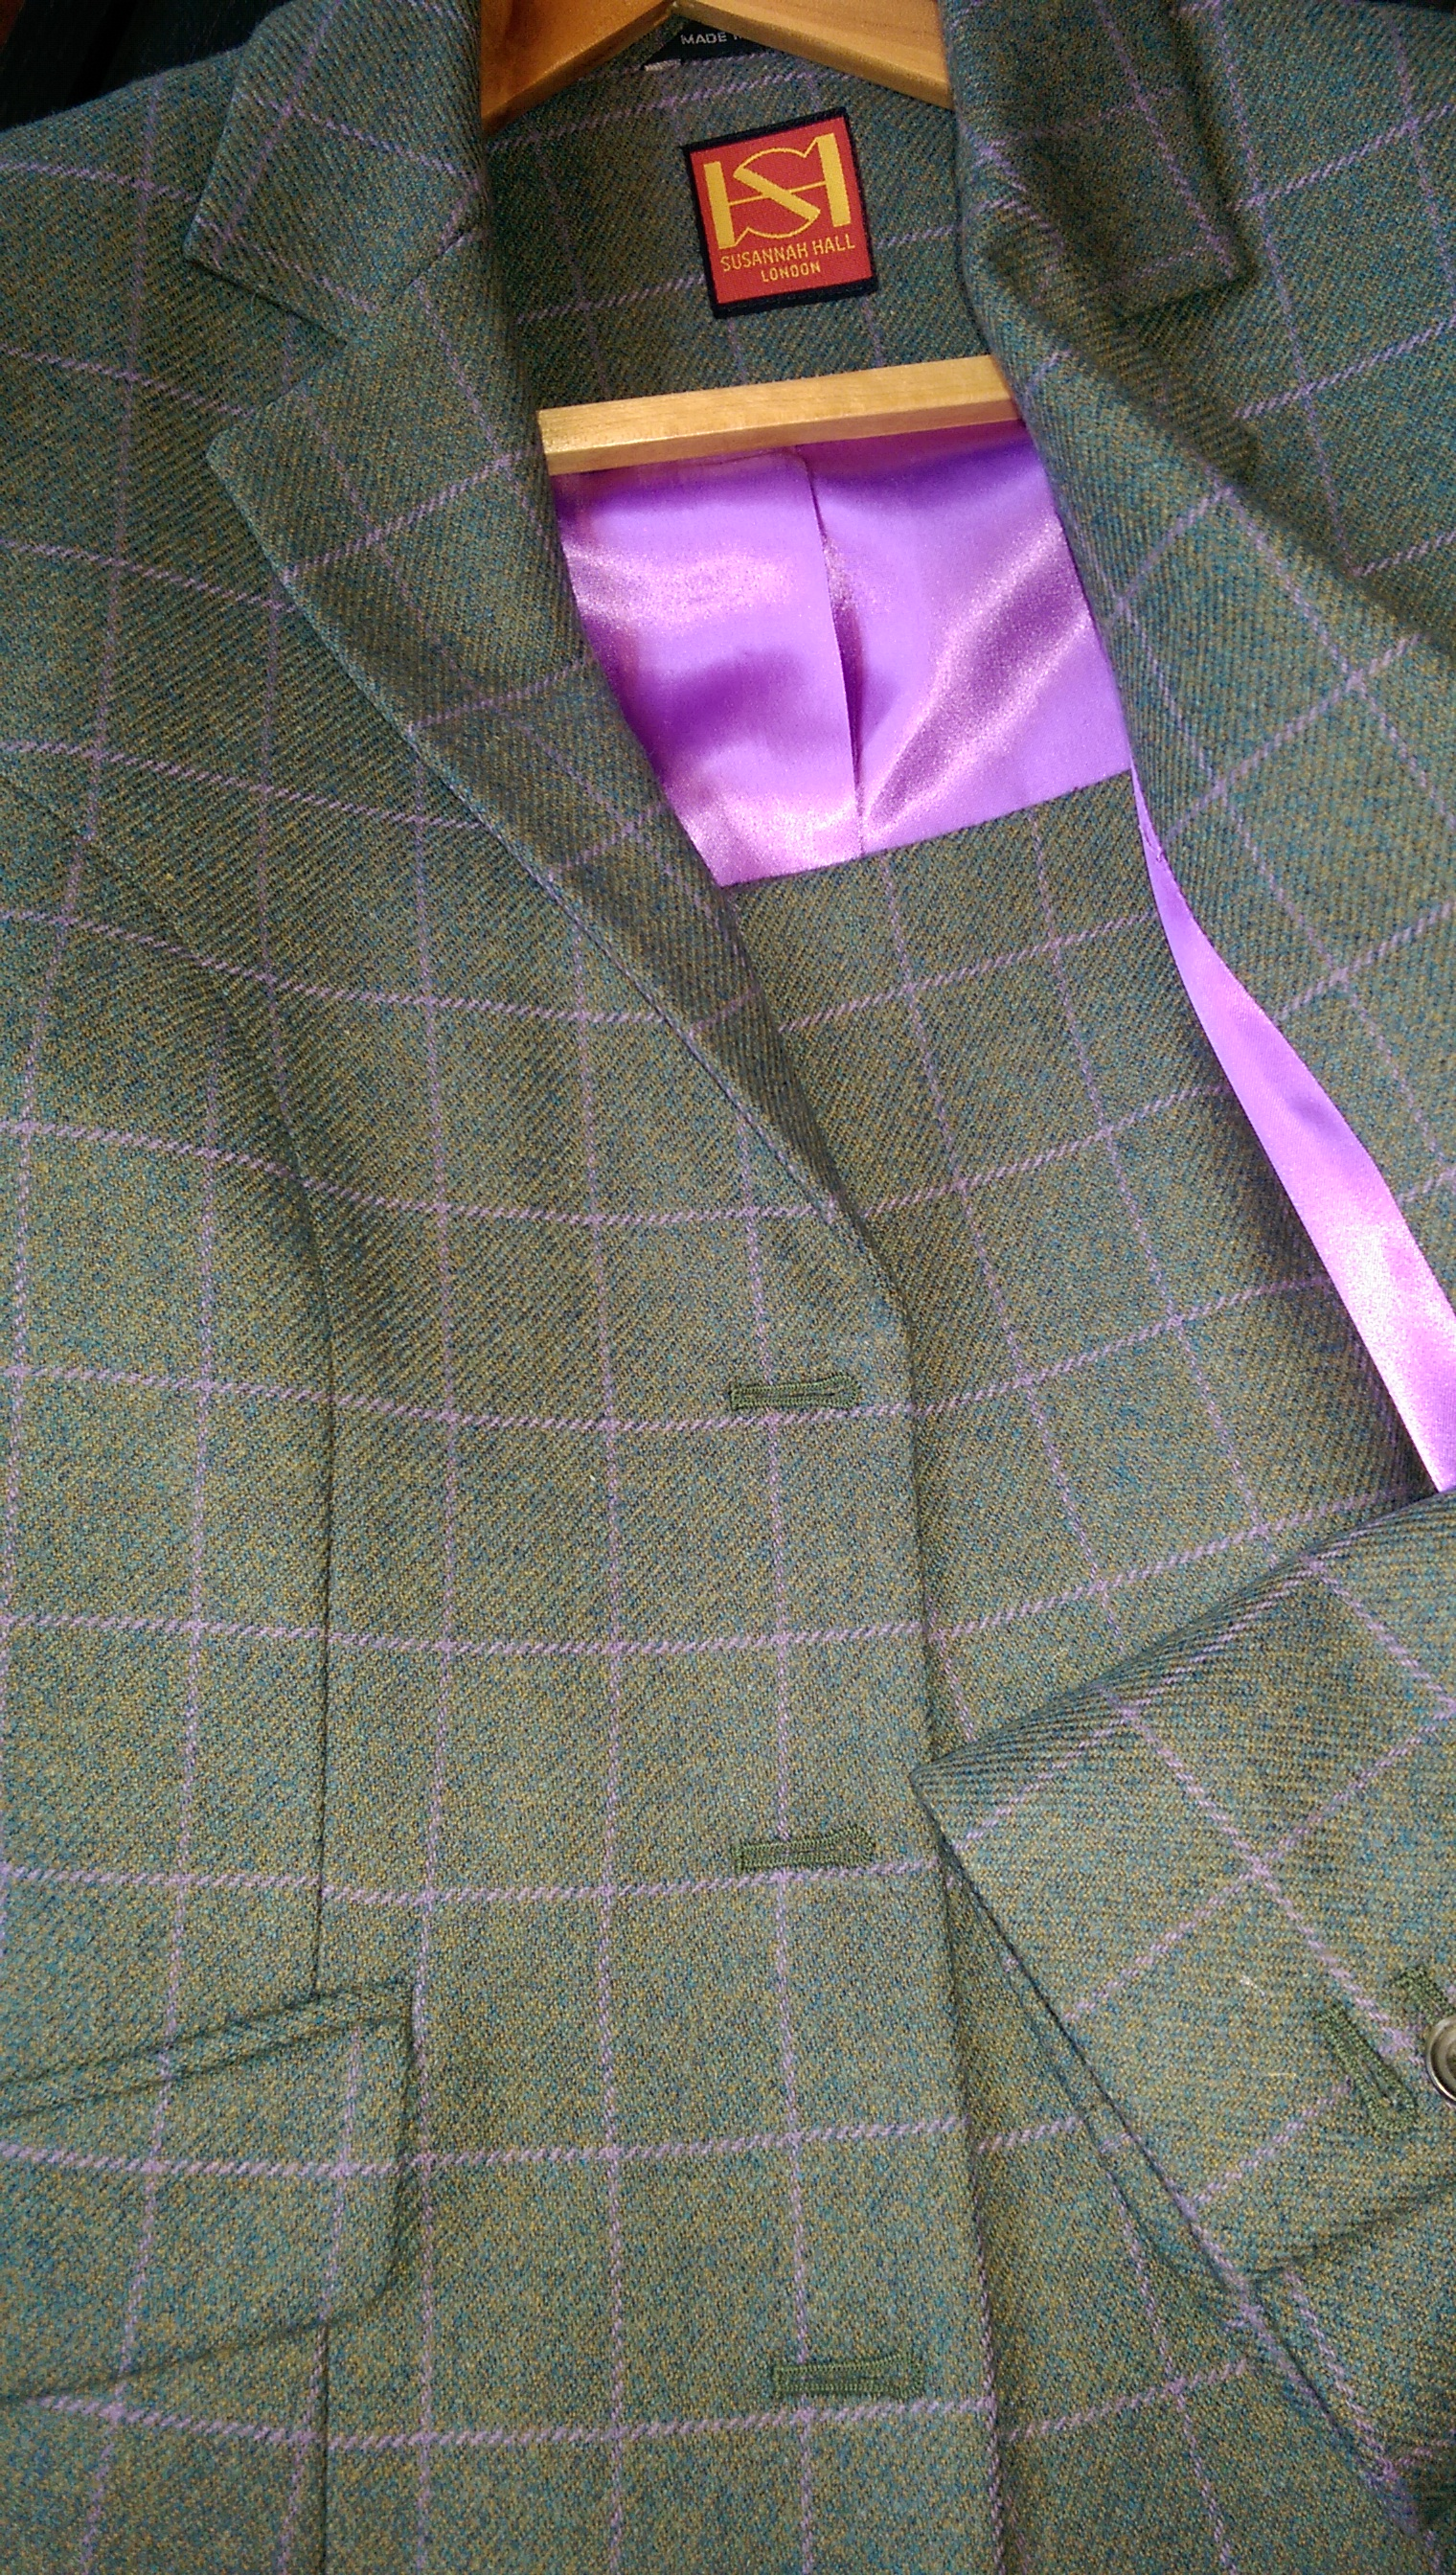 green-purple-lime-tweed-overcheck-lilac-lining-ladies-bespoke-all-uk-made.jpg